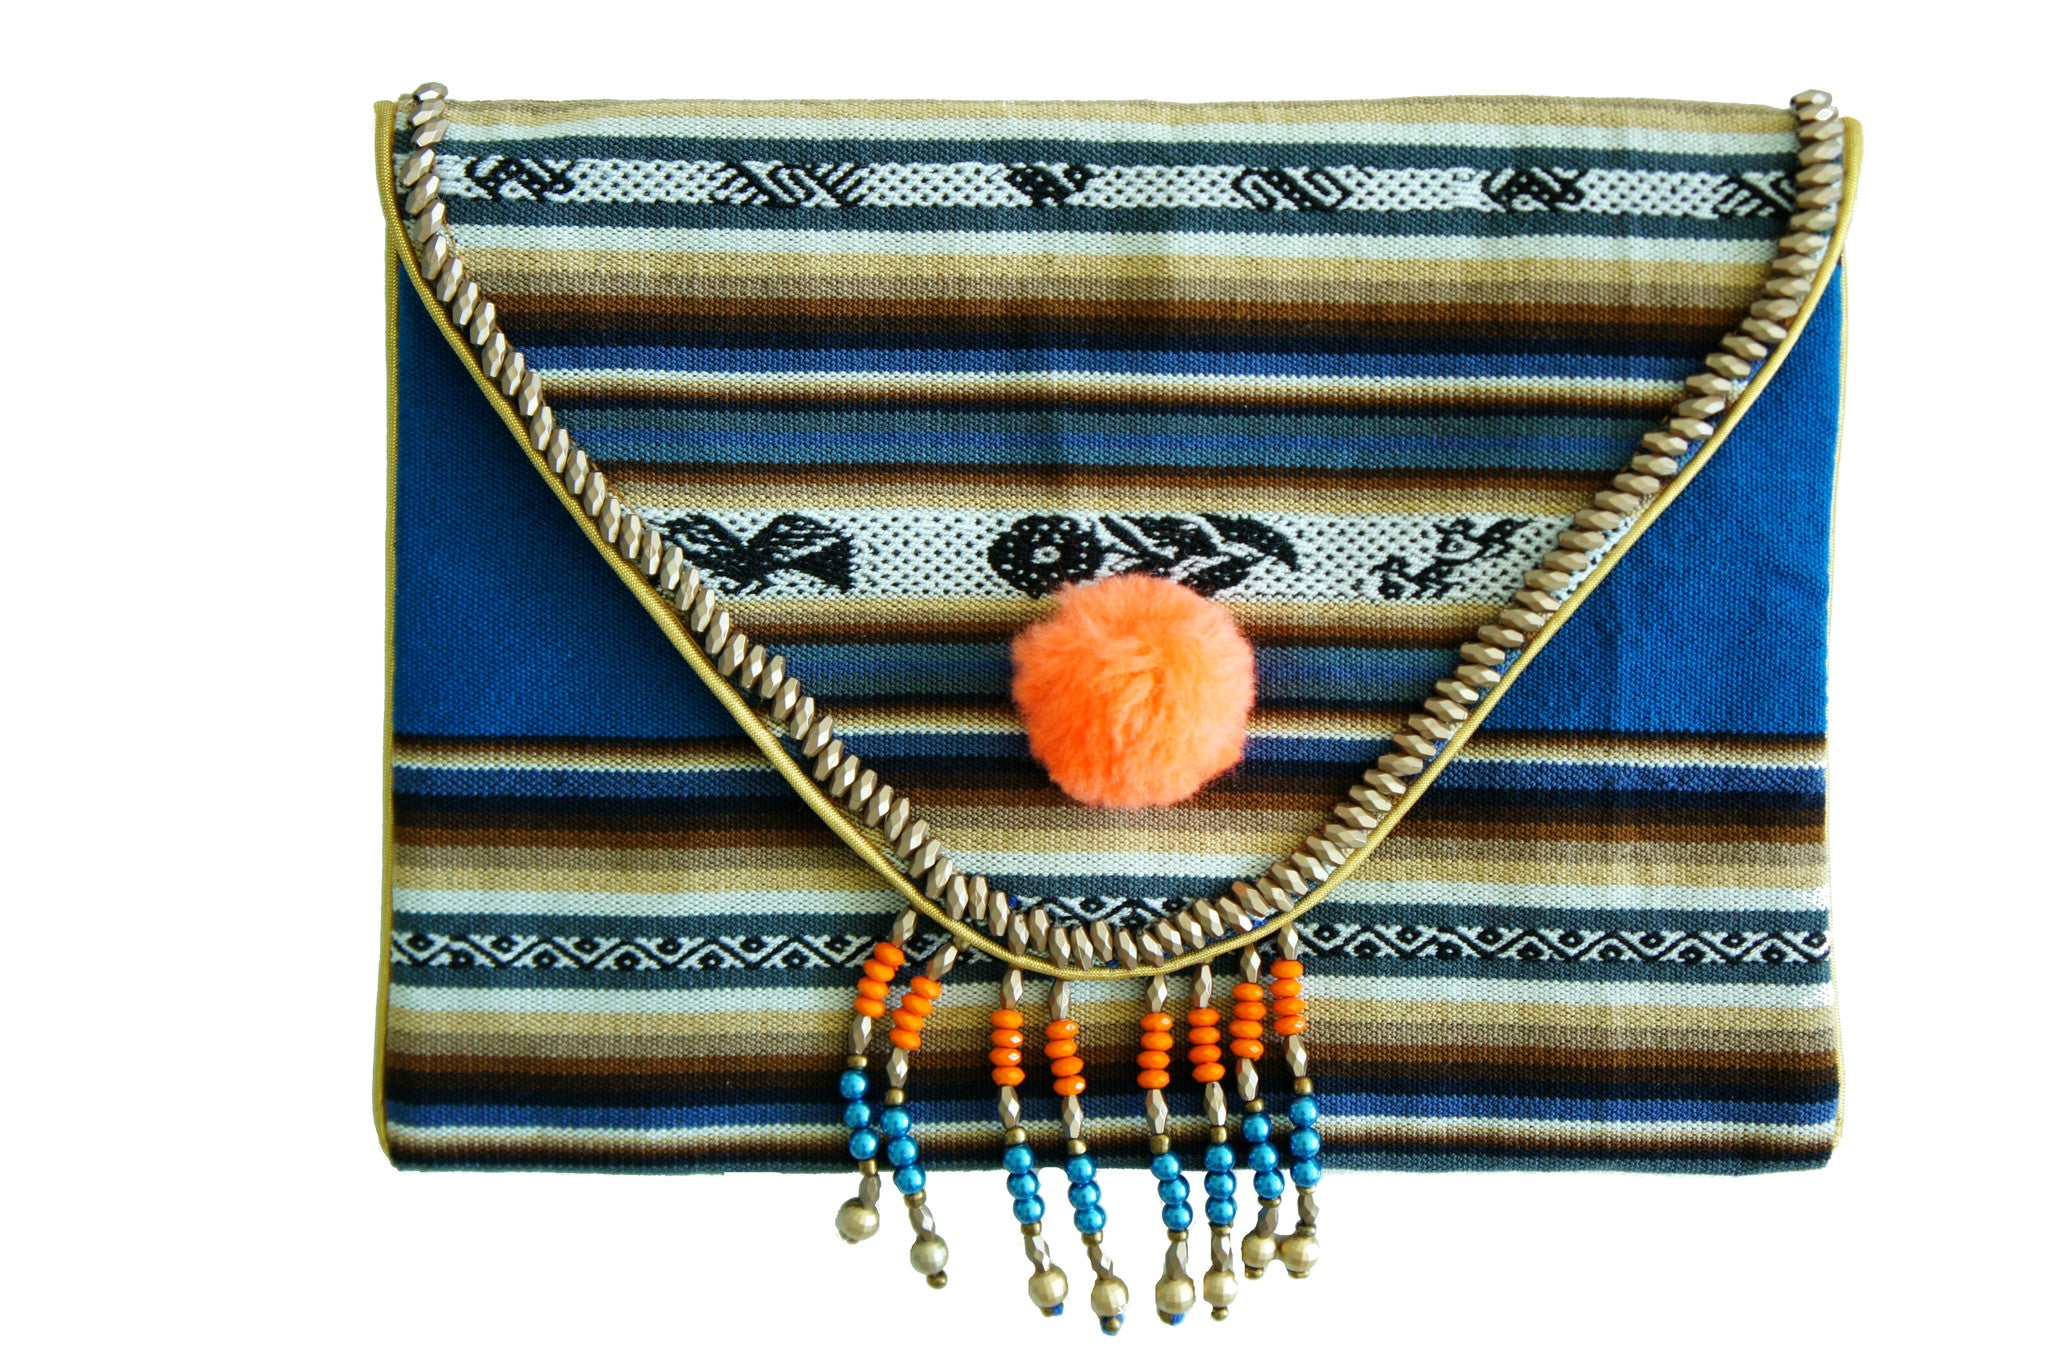 Bolivian Orange Pom Pom Bag